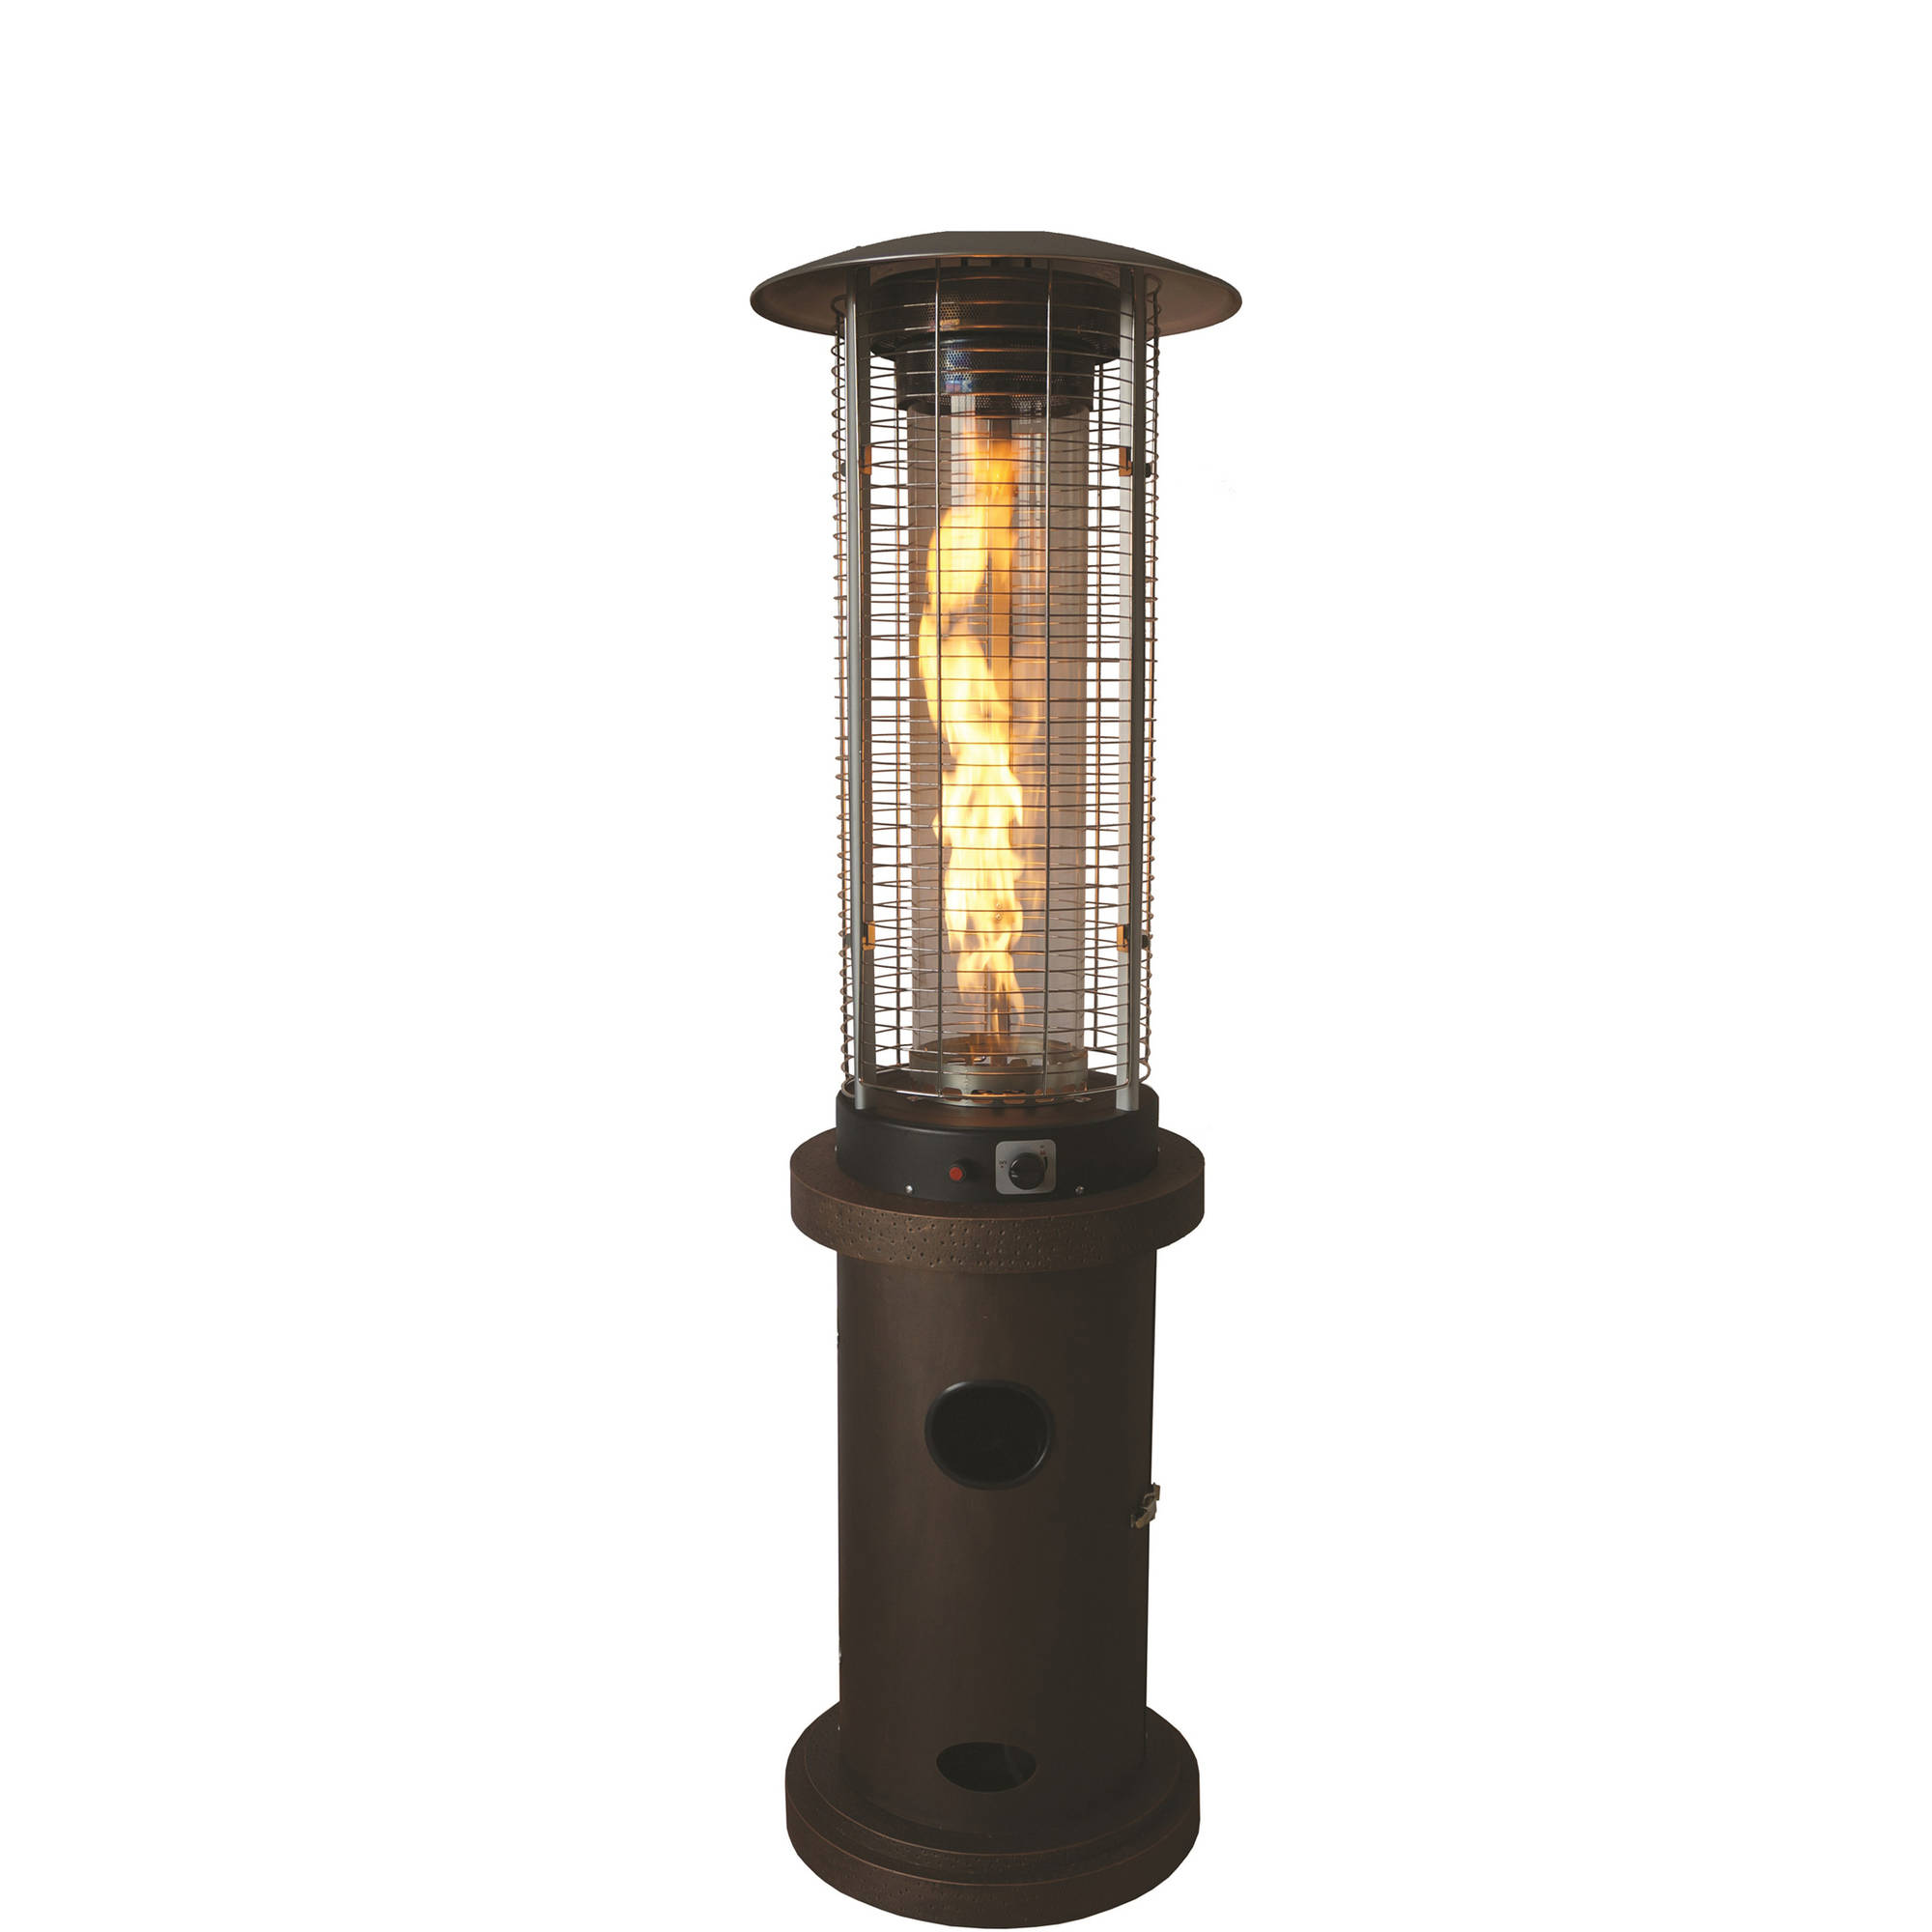 Bond Larkspur Rapid Induction Patio Heater Walmart